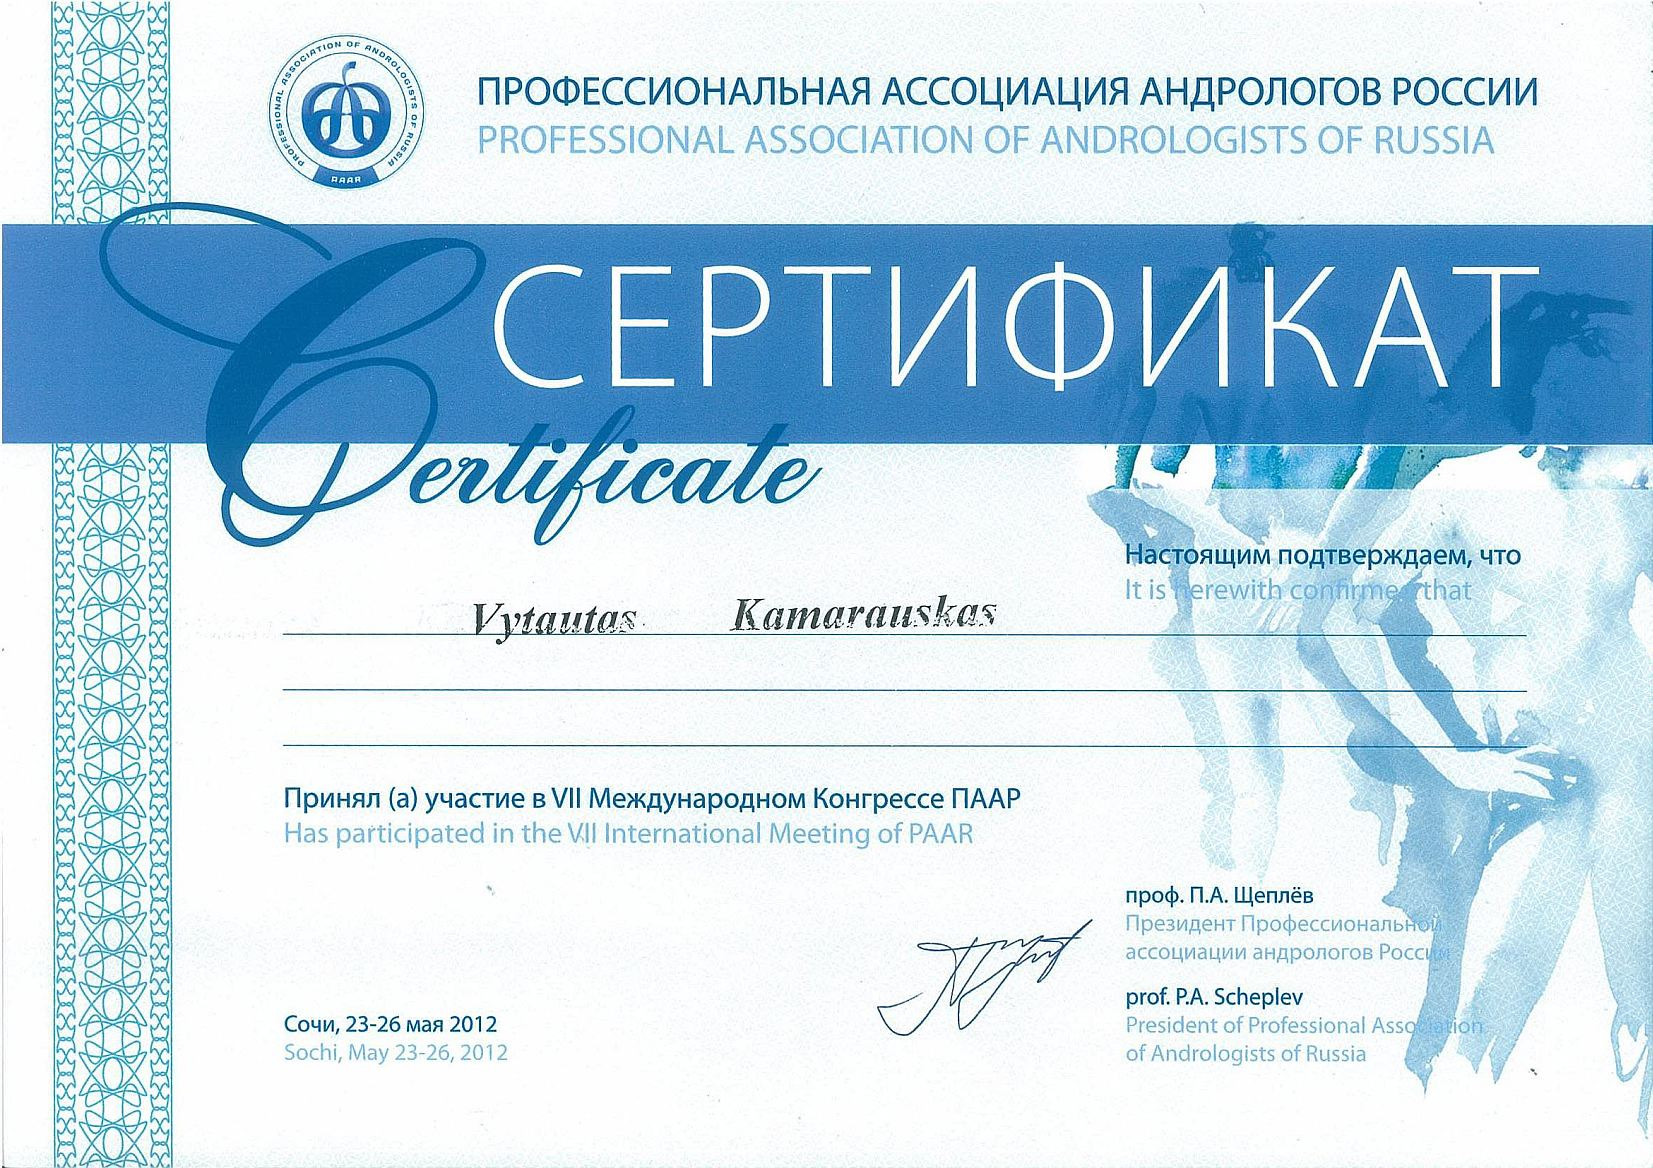 VII International Meeting of Professional Association of Andrologists of Russia, 23-26 May 2012, Sochi